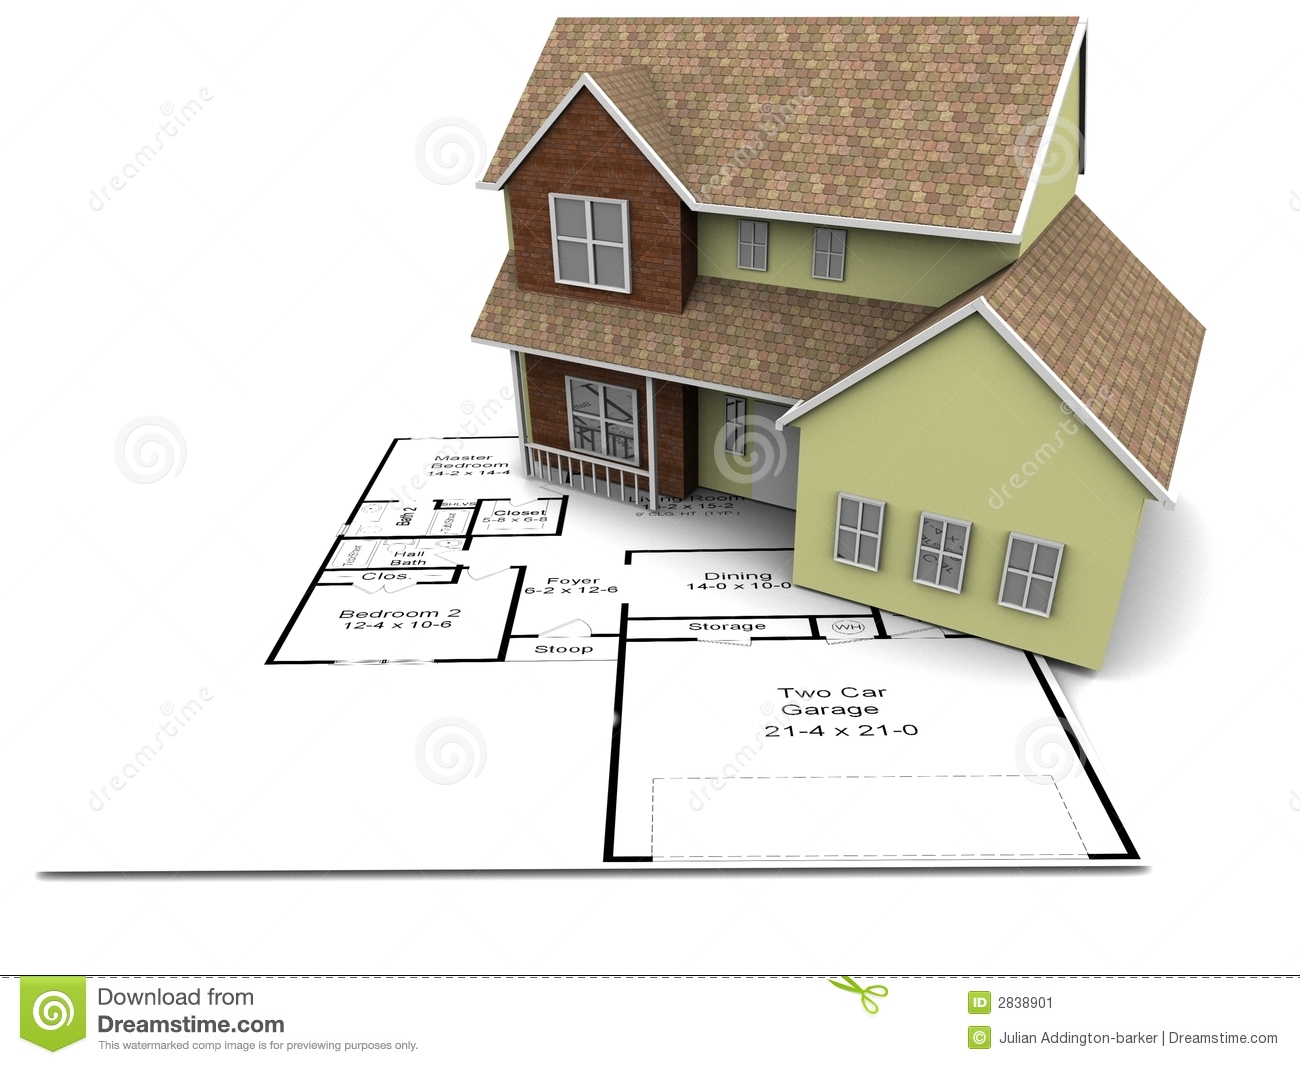 New house plans stock illustration illustration of house for New floor plans